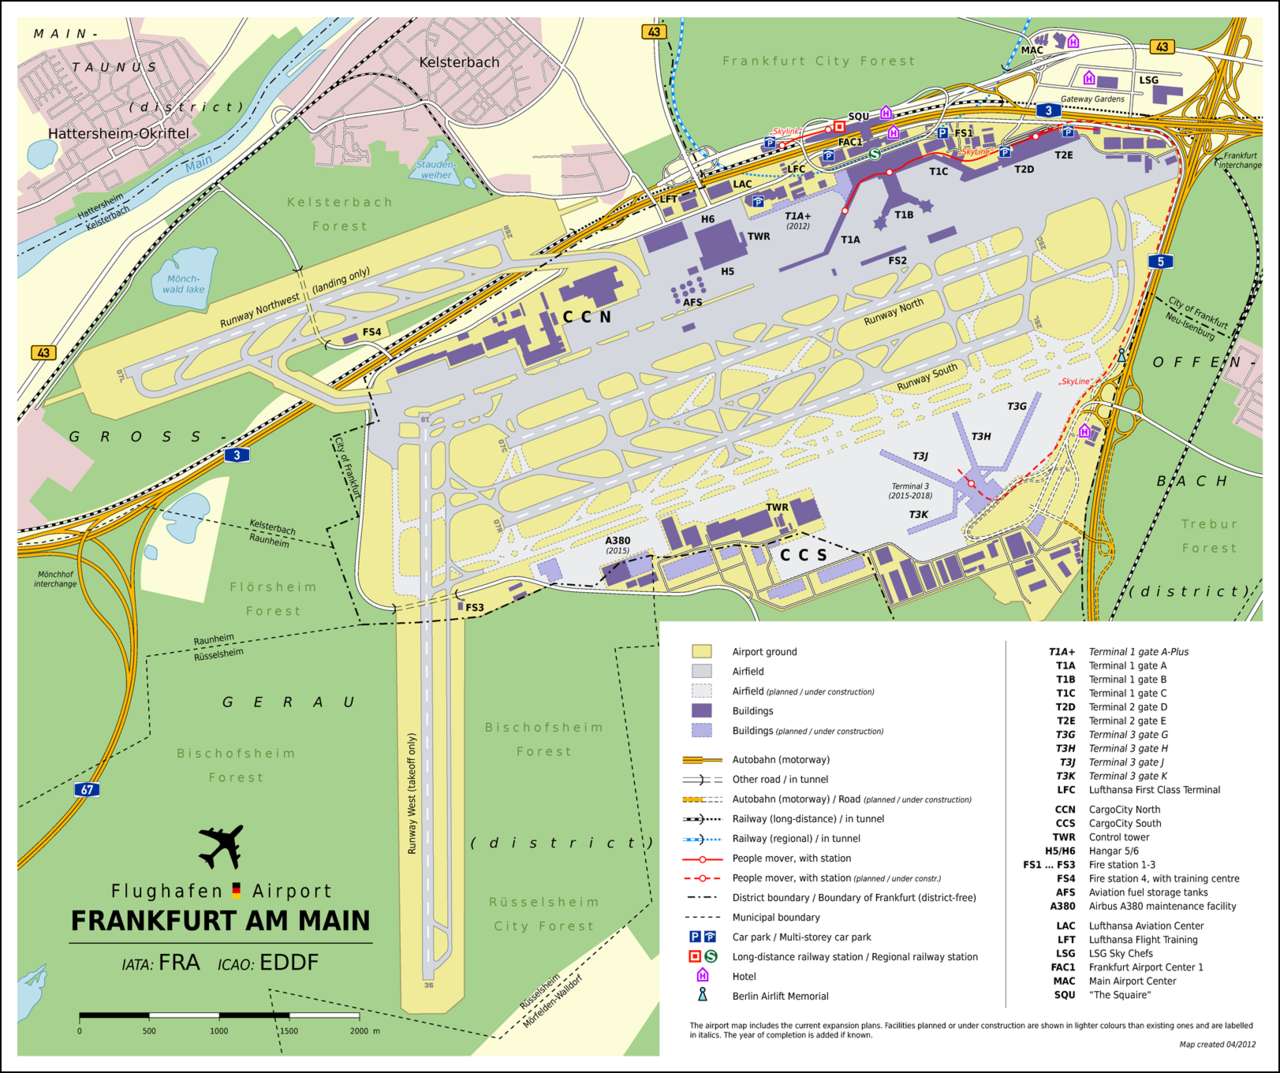 Frankfurt-Main Airport Map EN - Frankfurt Airport - Wikipedia, the ...